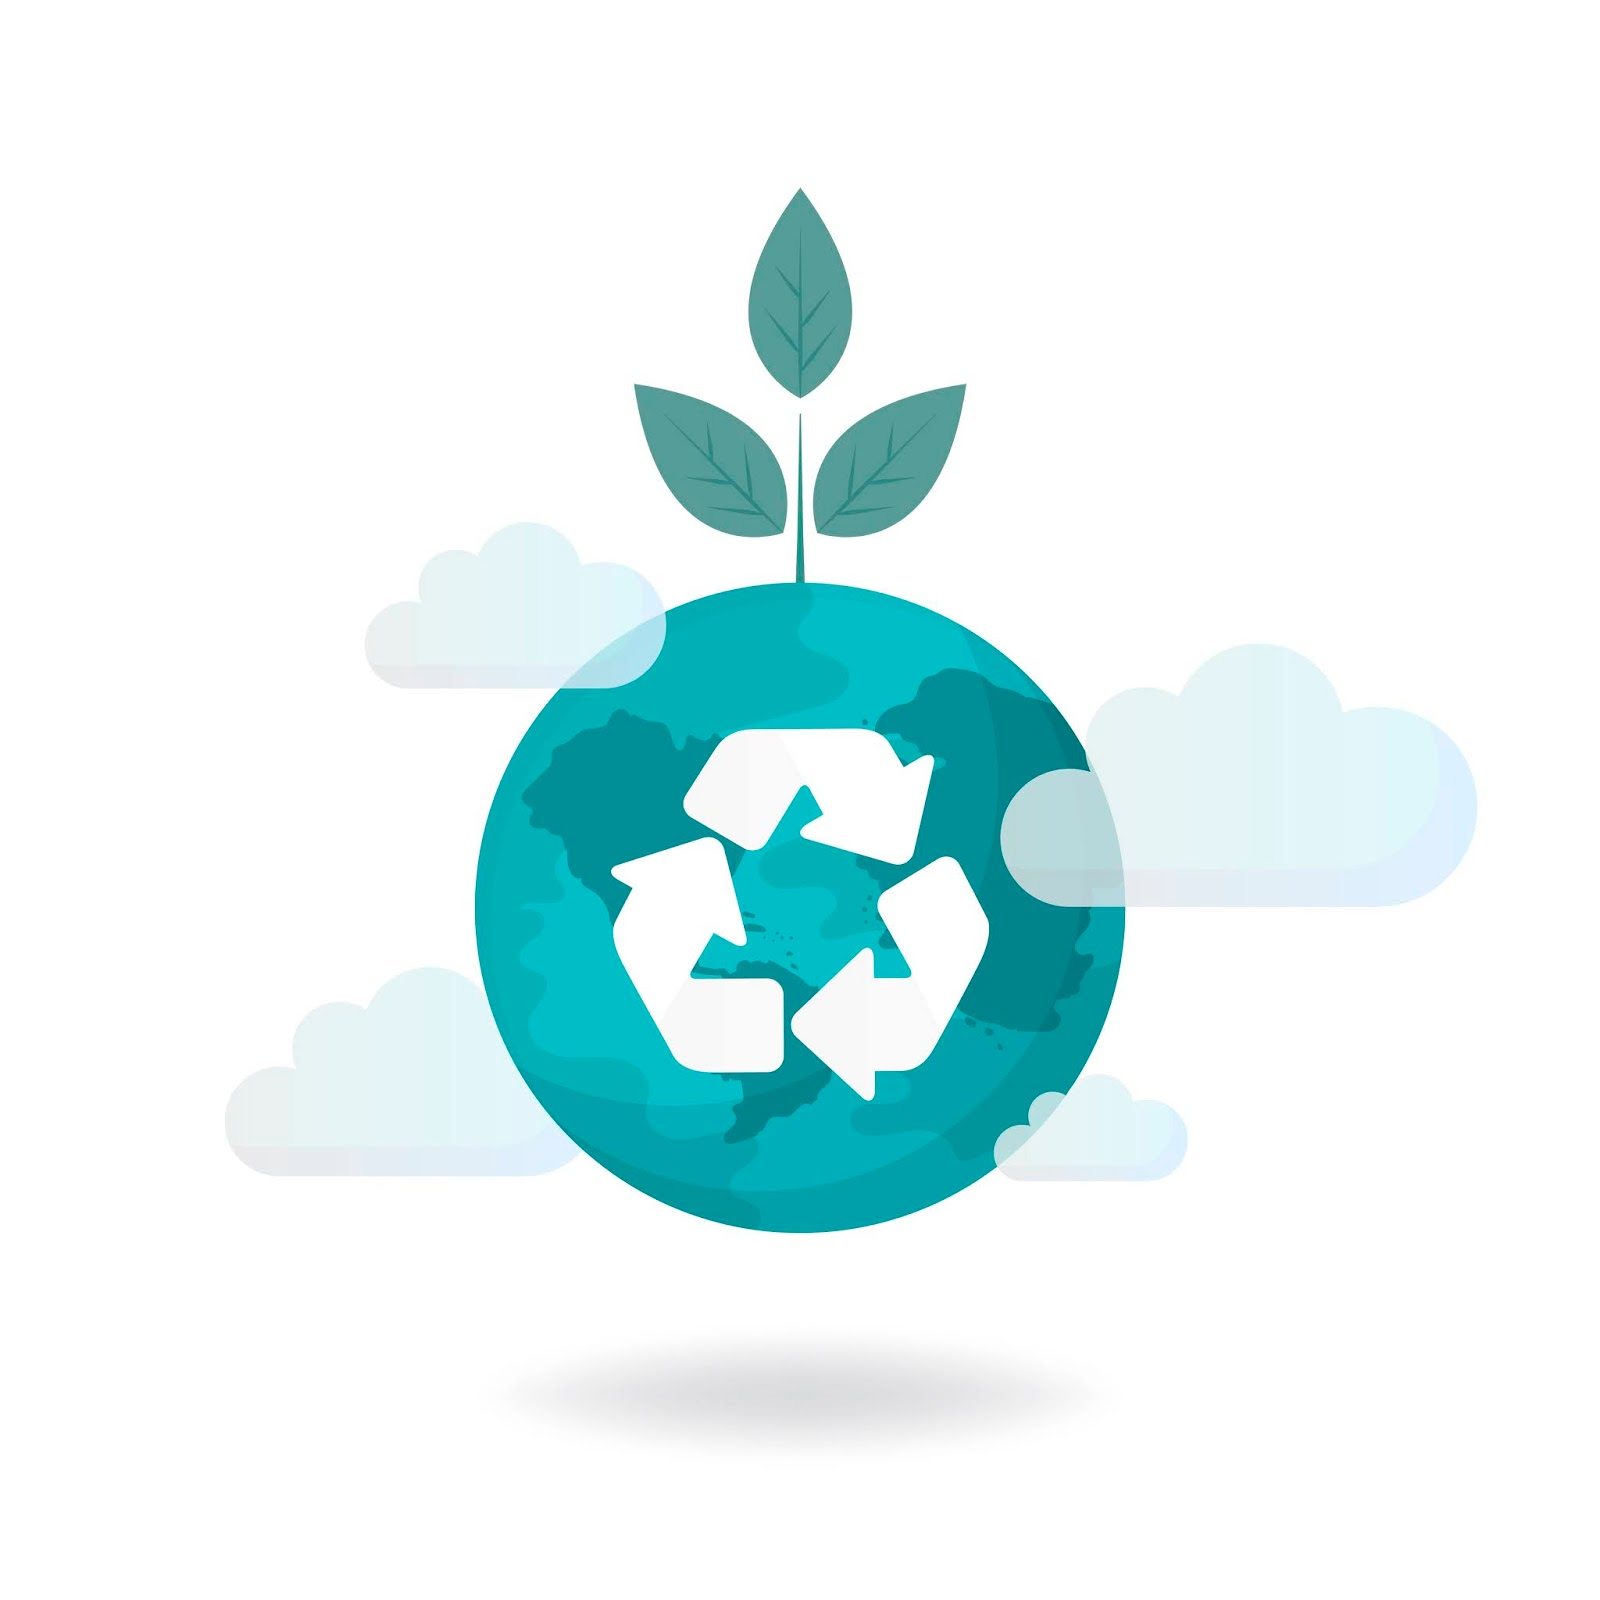 Recycle Symbol Environmental Free Download Vector CDR, AI, EPS and PNG Formats